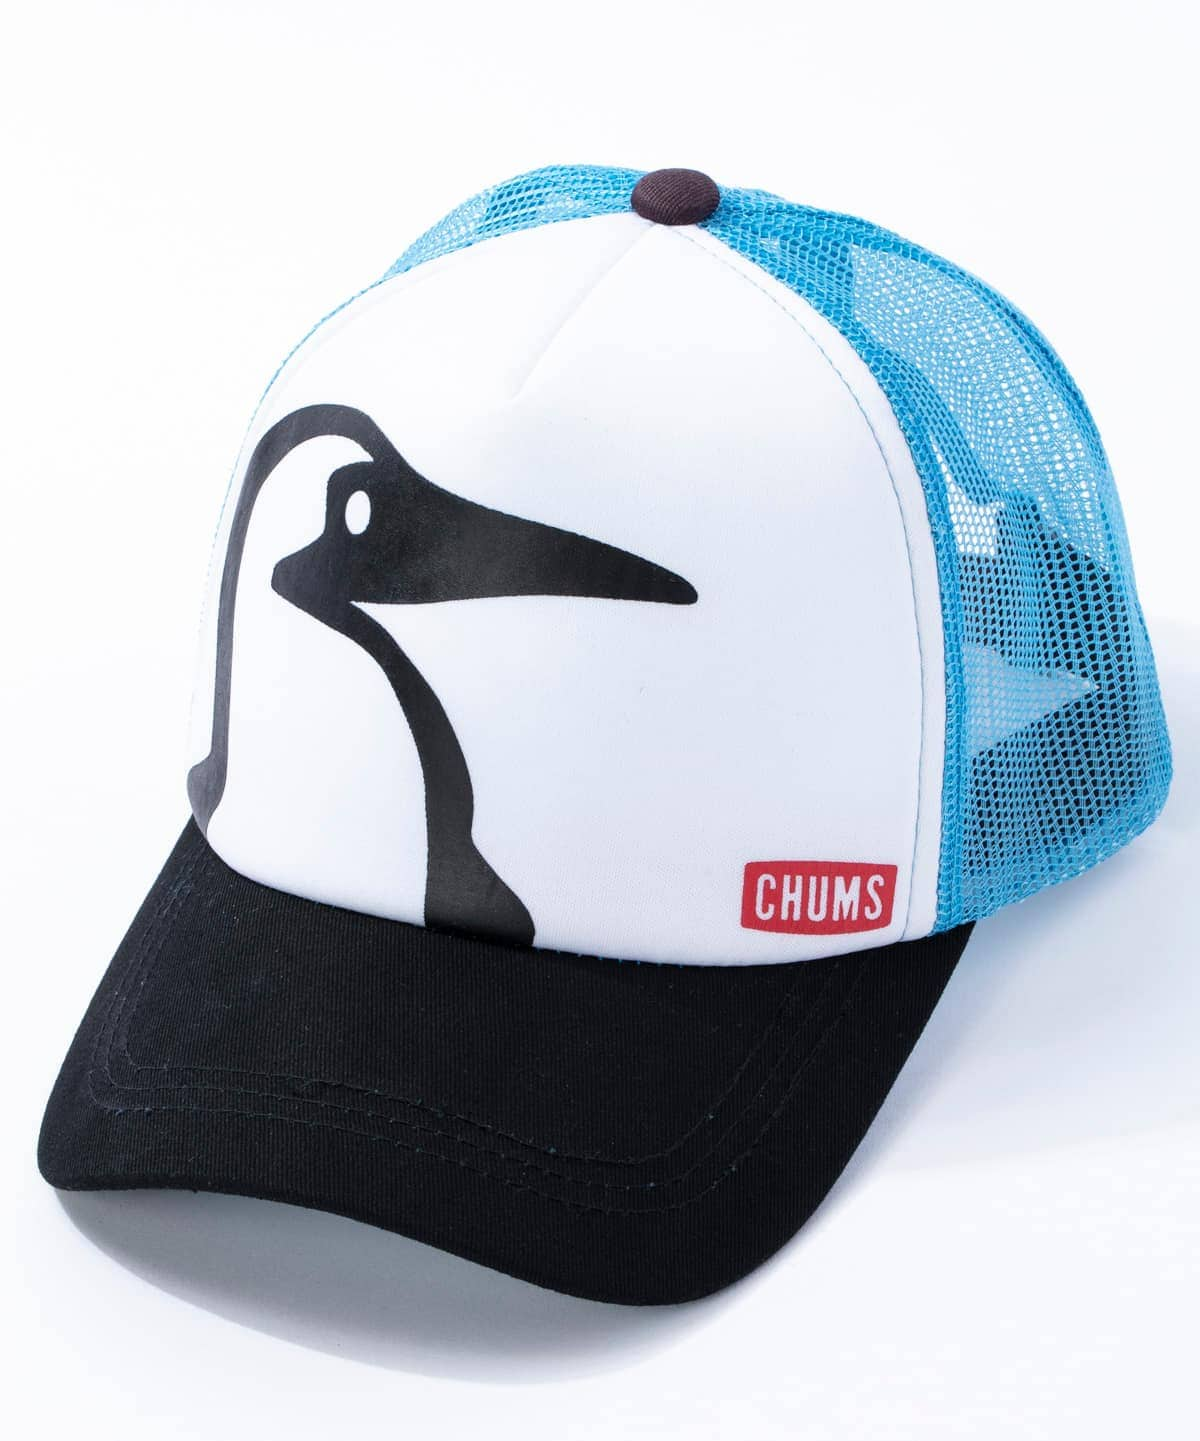 CHUMS (チャムス)表参道店 出典:CHUMS https://www.chums.jp/